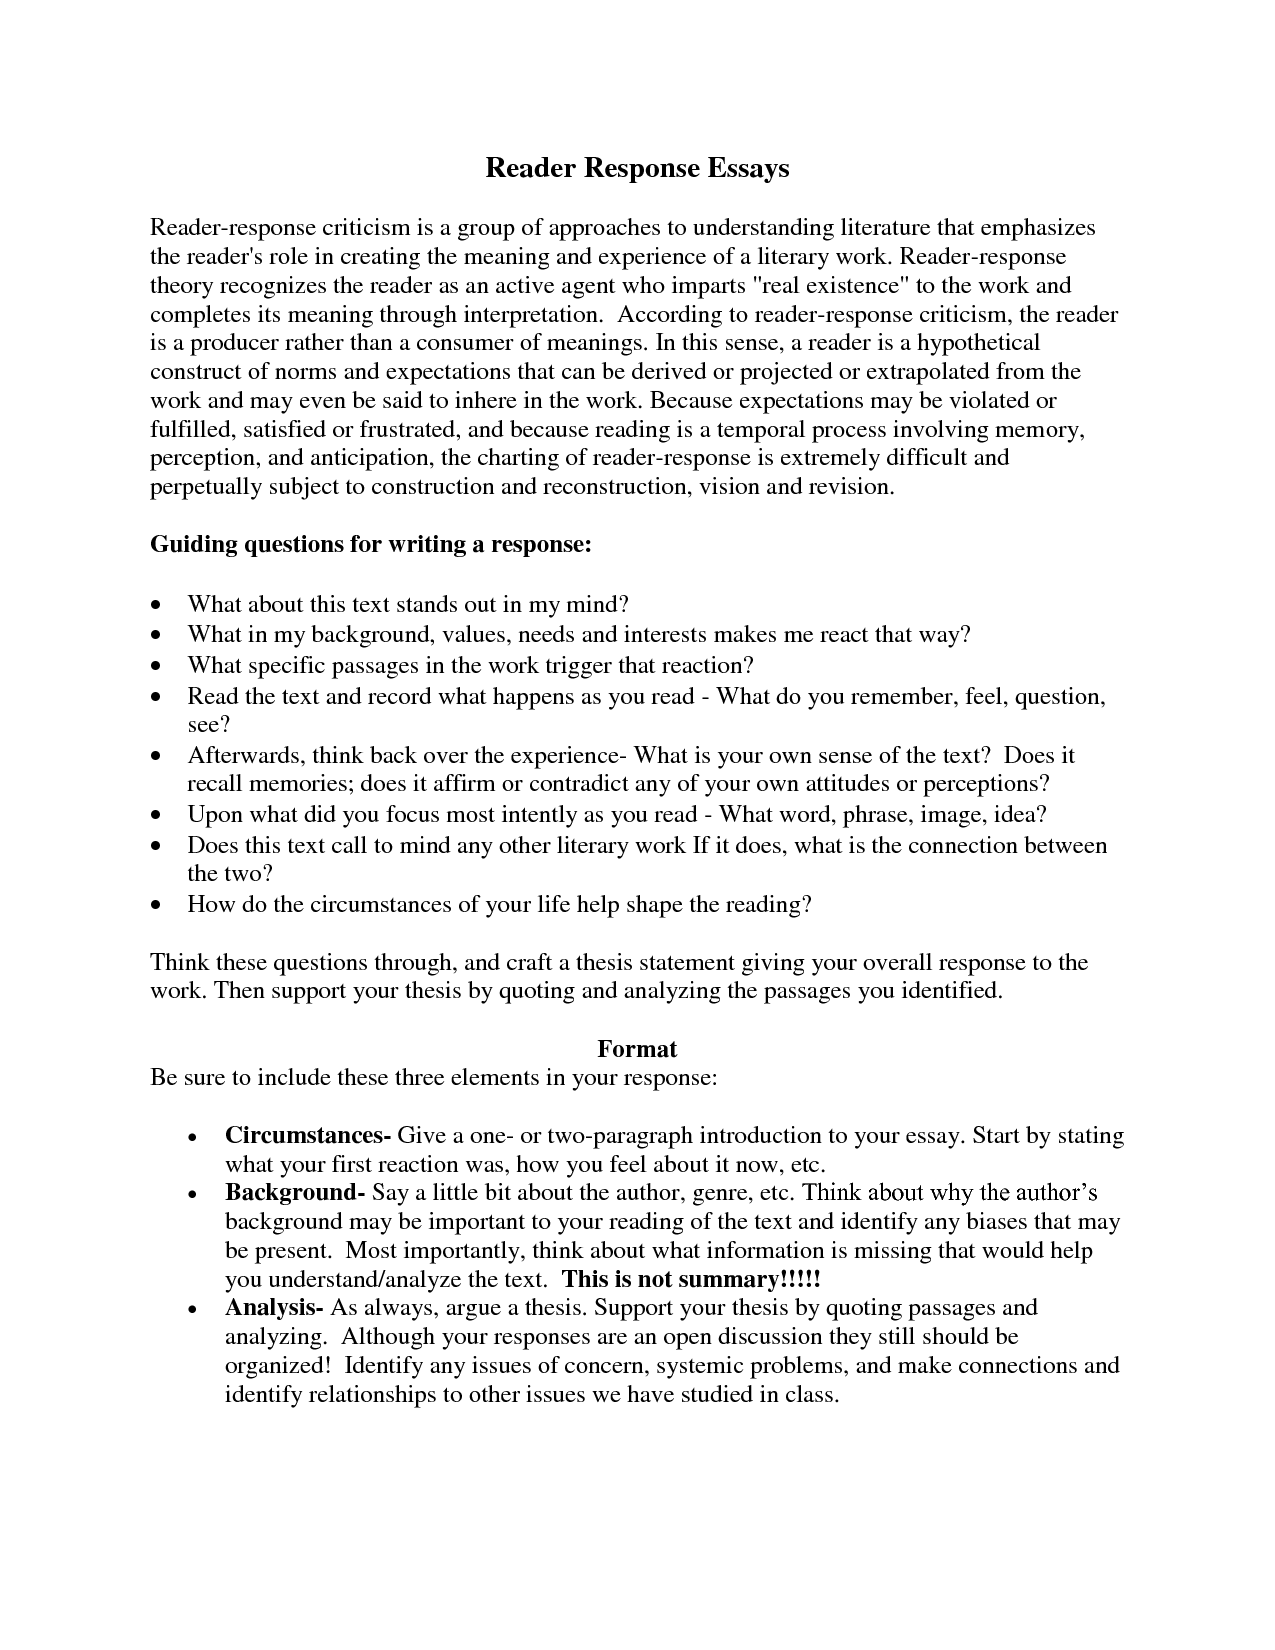 005 Response Essay Example Background Define Discussd Illustrate With Sample Of Critical Summaryalysis Crossing Brooklyn How To Write Introduction Writing Workshop Awful Text Analysis Extended Year 12 Full